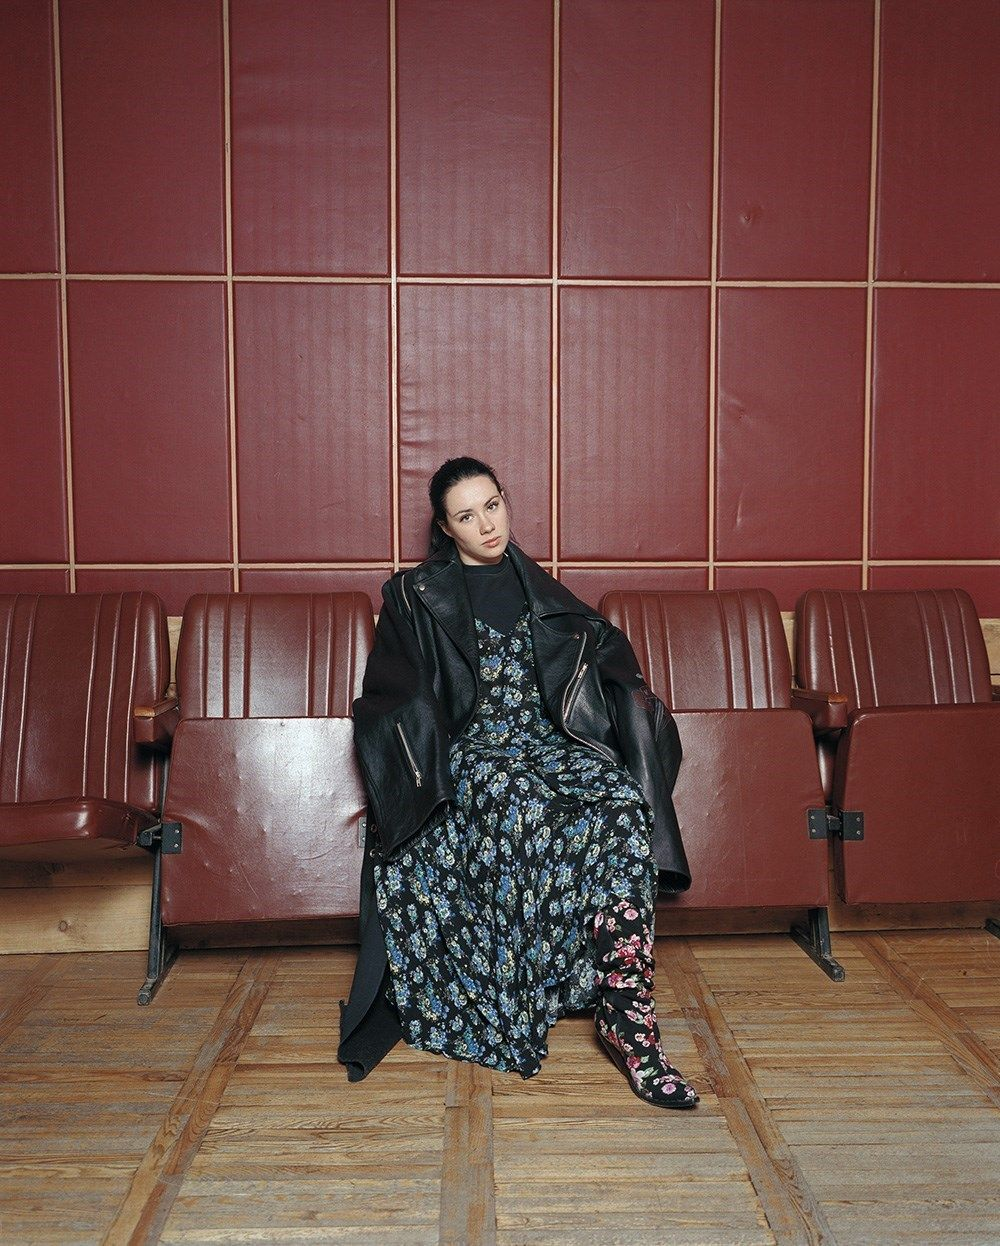 oversized leather bomber jacket and deconstructed floral print dress Vetements AW15, floral print cowboy boots Vetements SS16  Photography Andrew Miksys, fashion Lotta Volkova